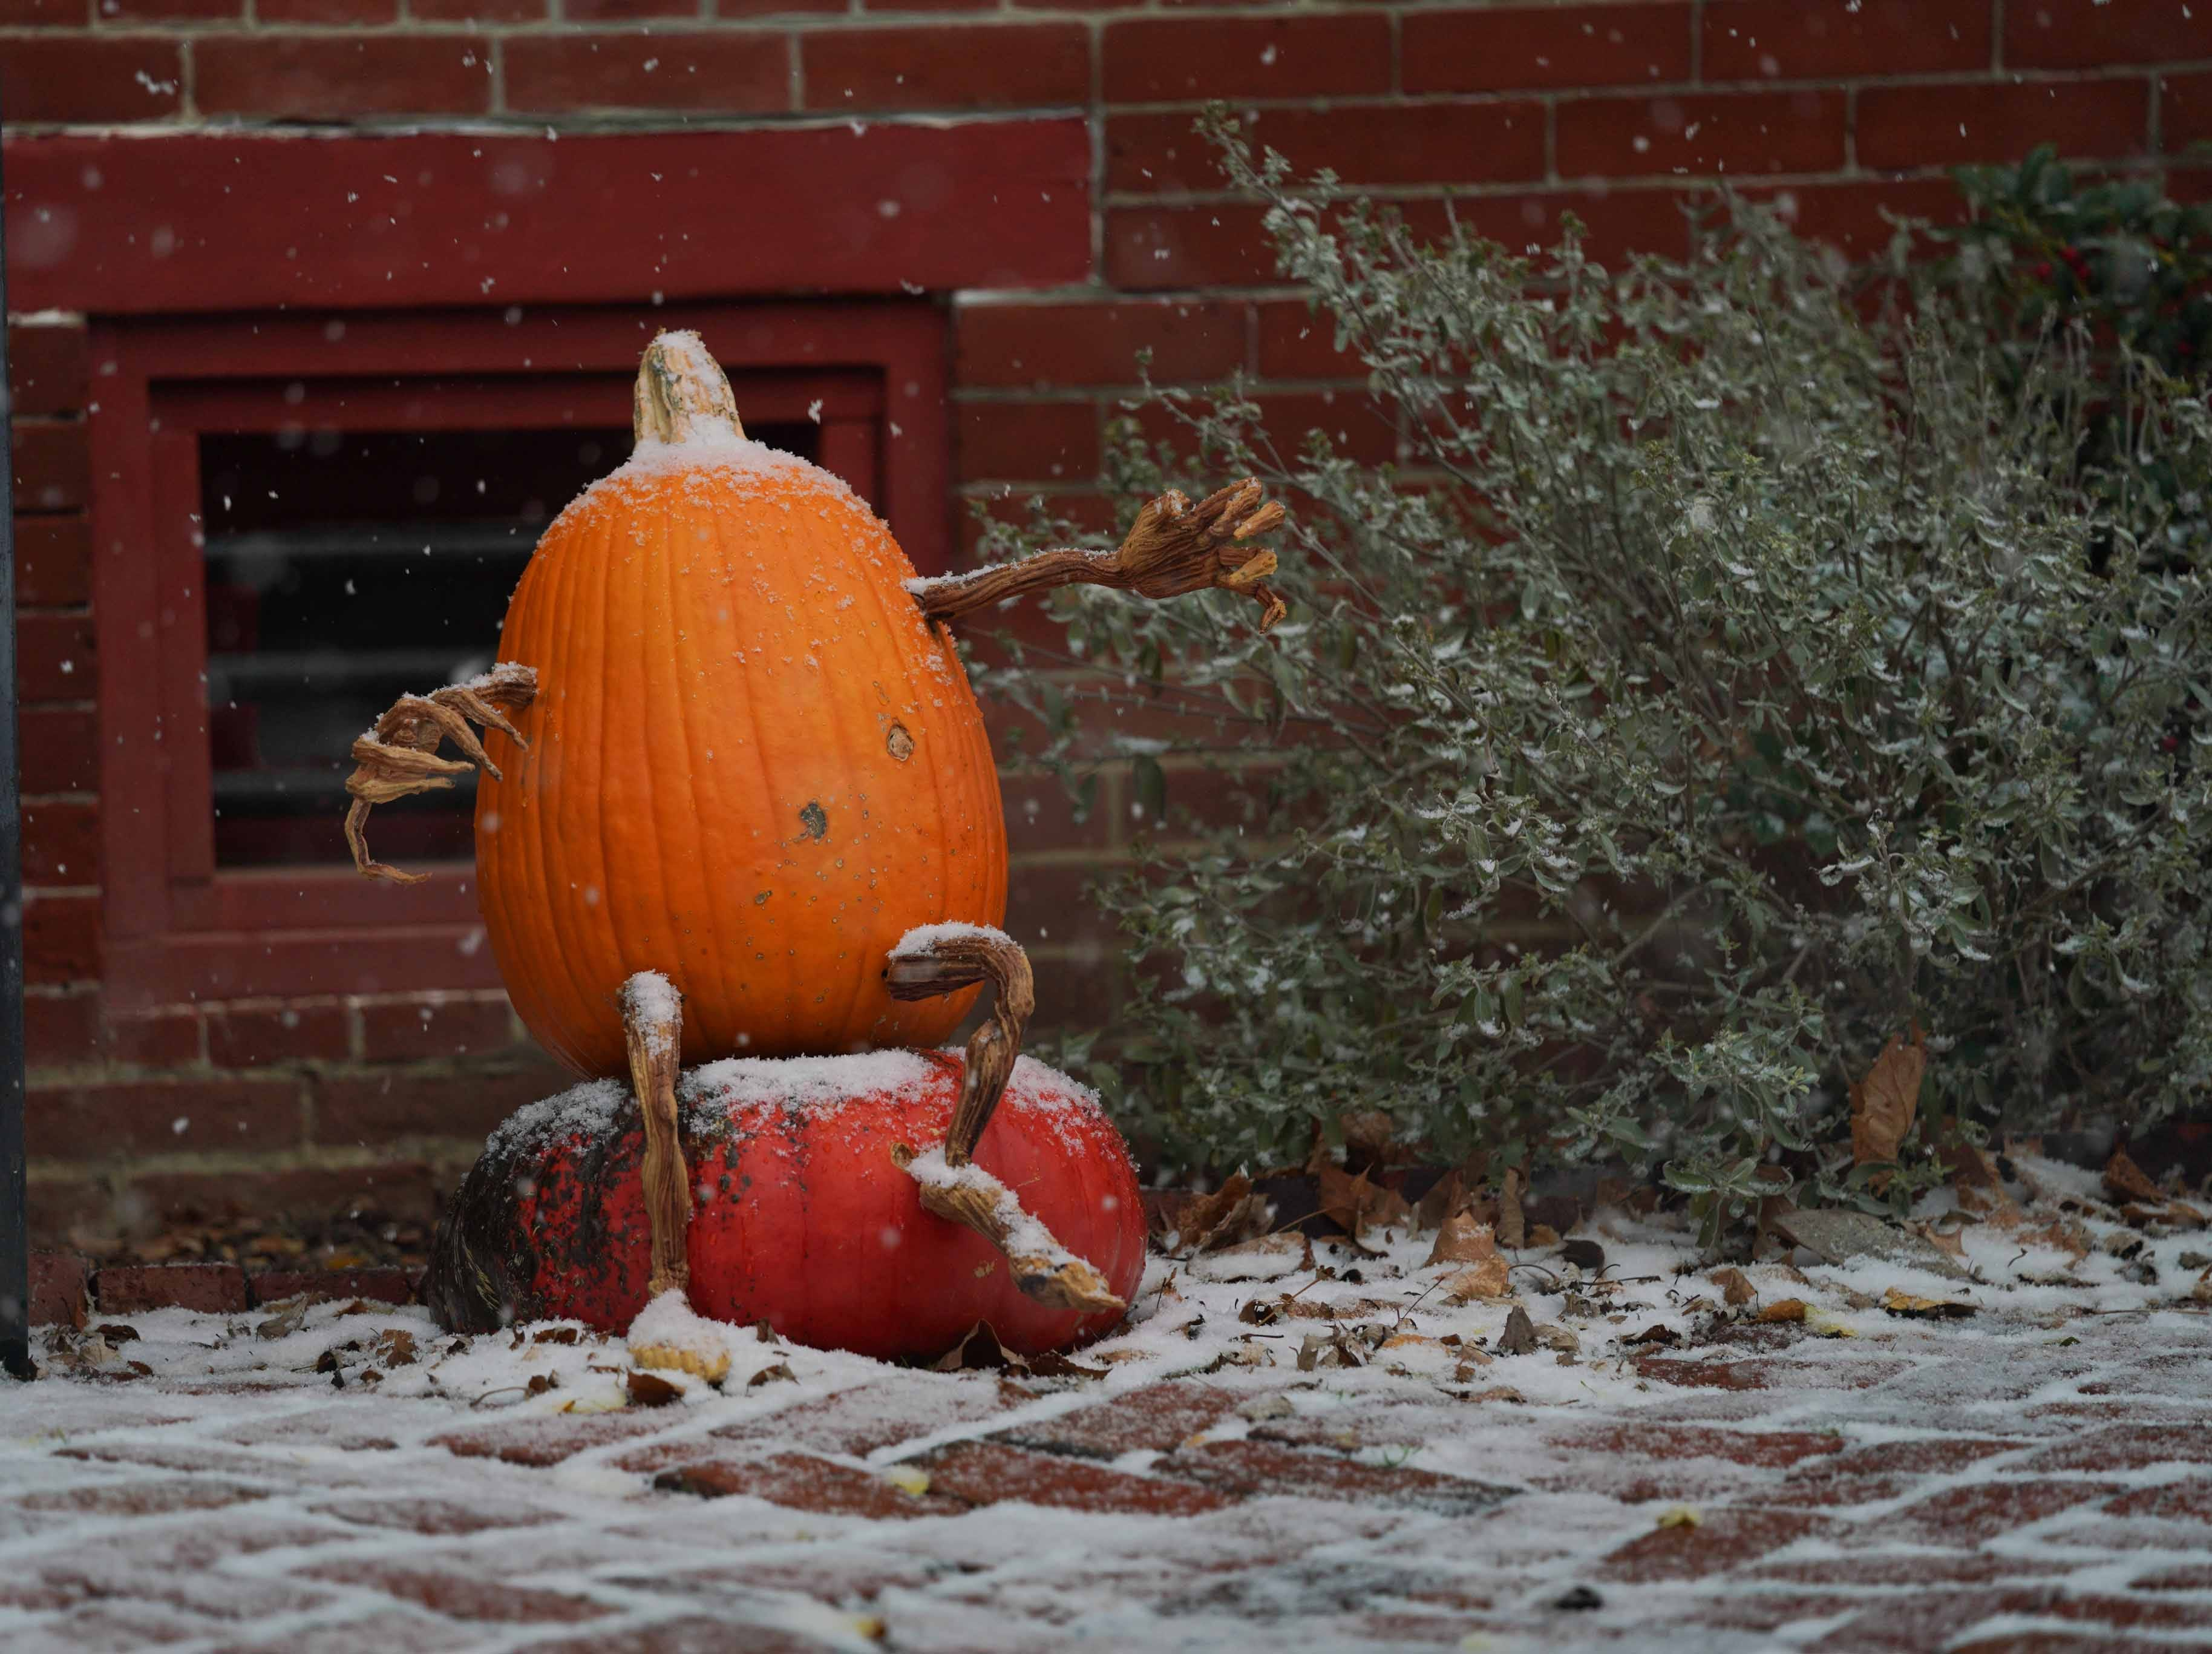 A fall pumpkin gets a coating of snow in Old New Castle on Thursday morning.